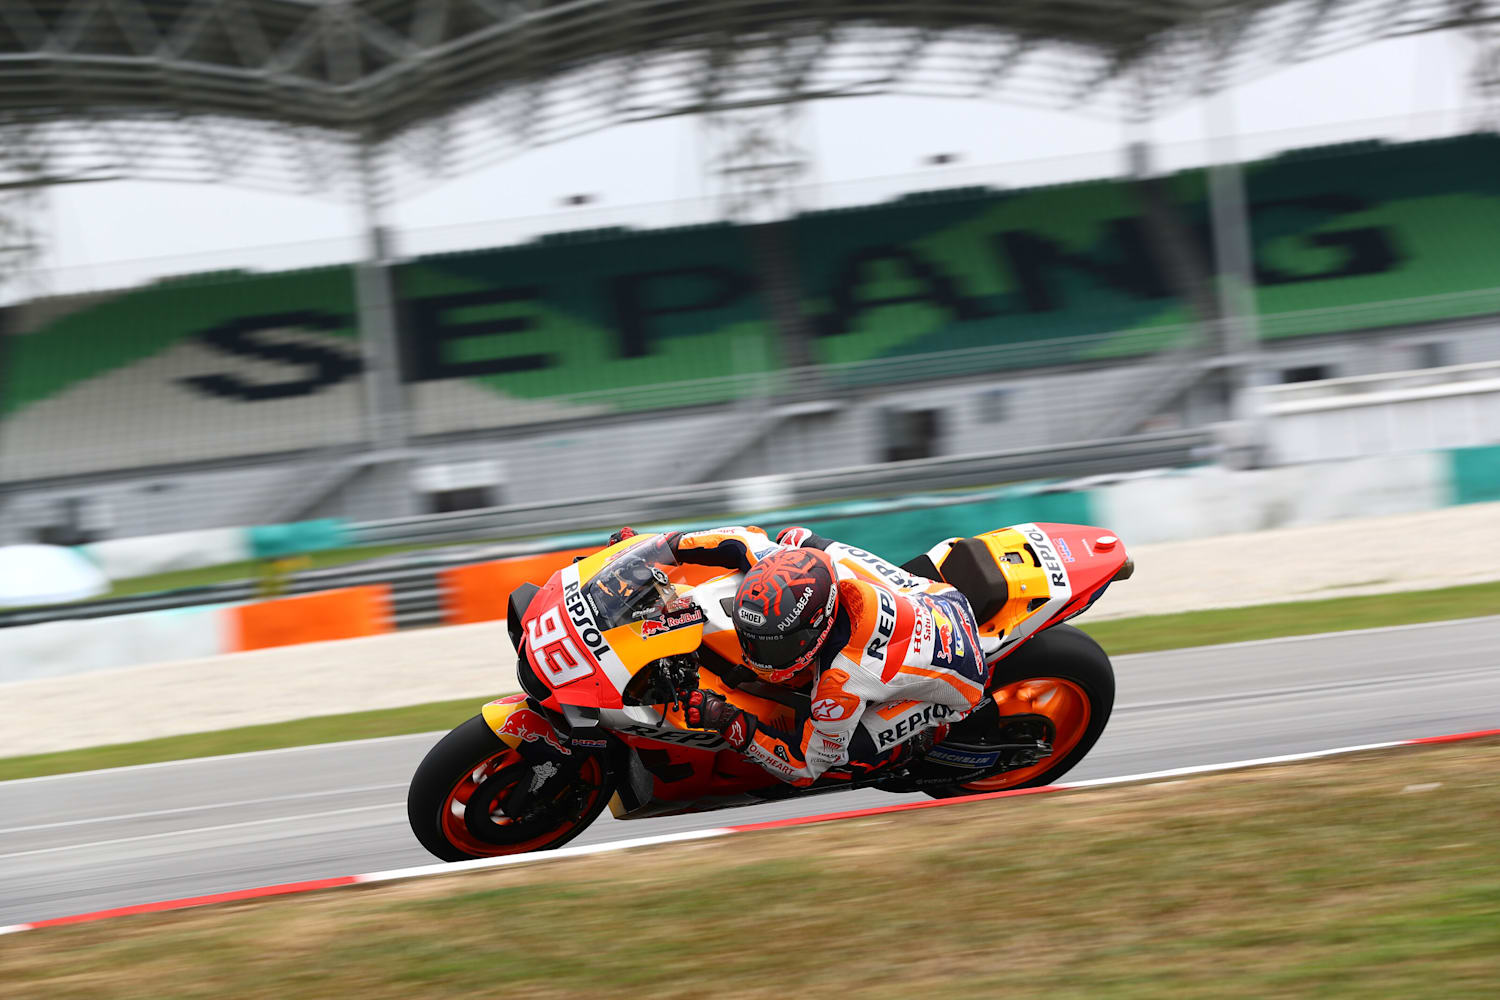 Motogp 2020 Guide Everything You Need To Know